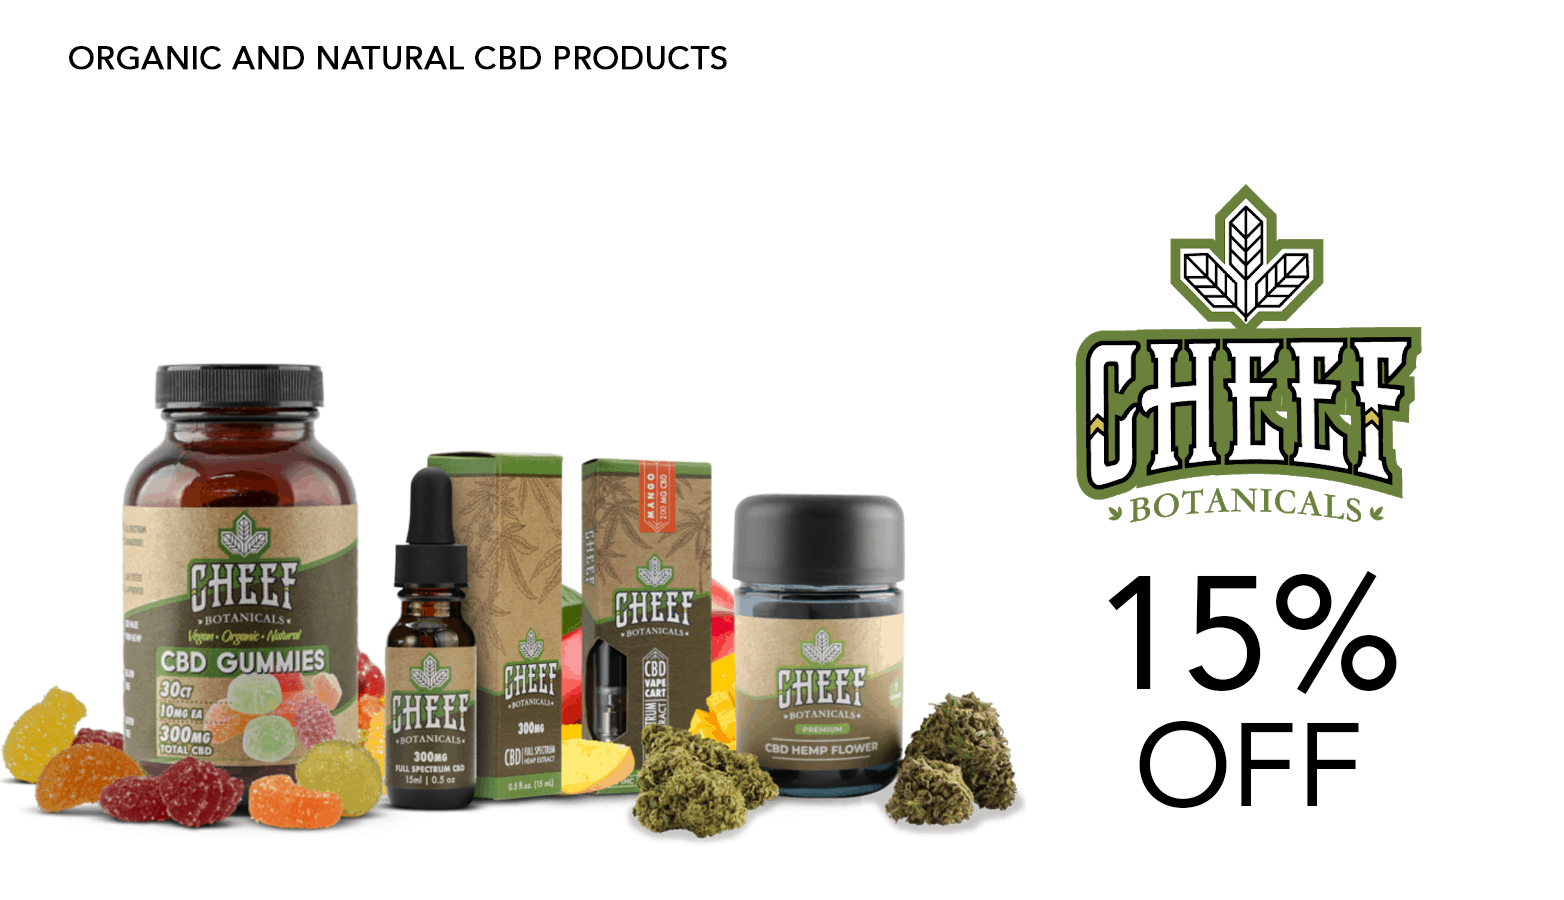 Cheef Botanicals CBD Coupon Code Offer Website